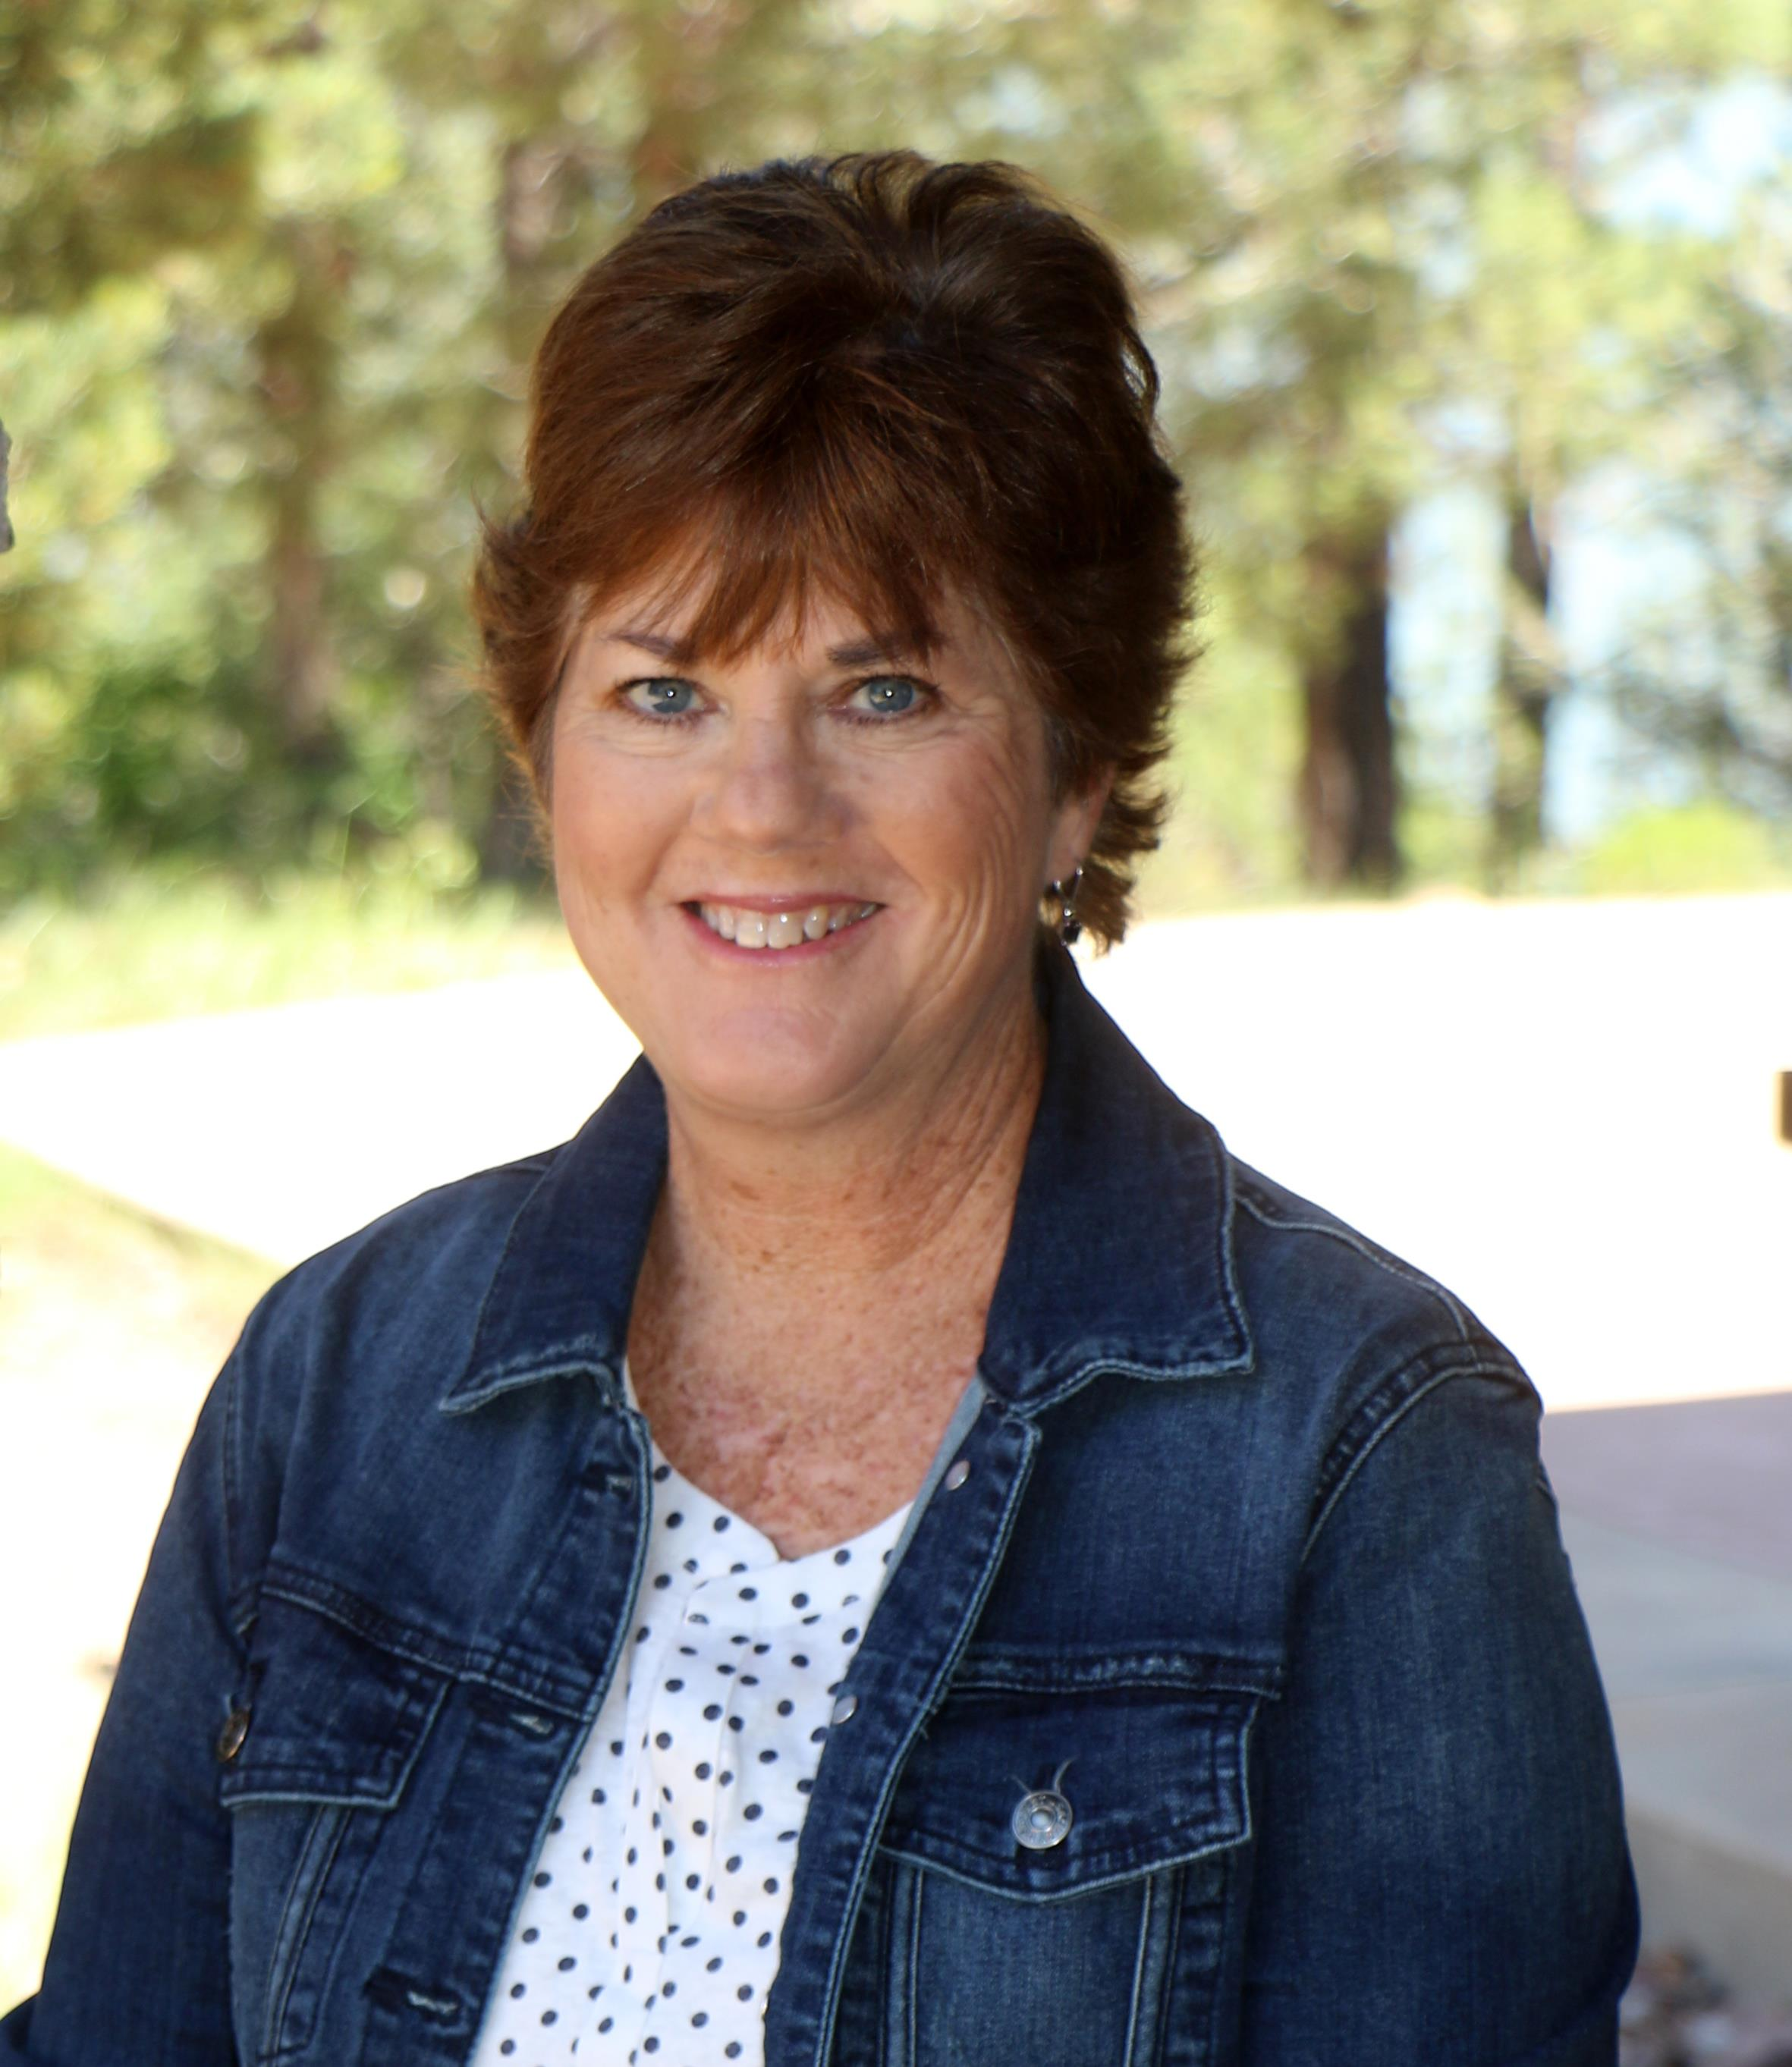 Beth Beth is a licensed real estate agent in Show Low AZ